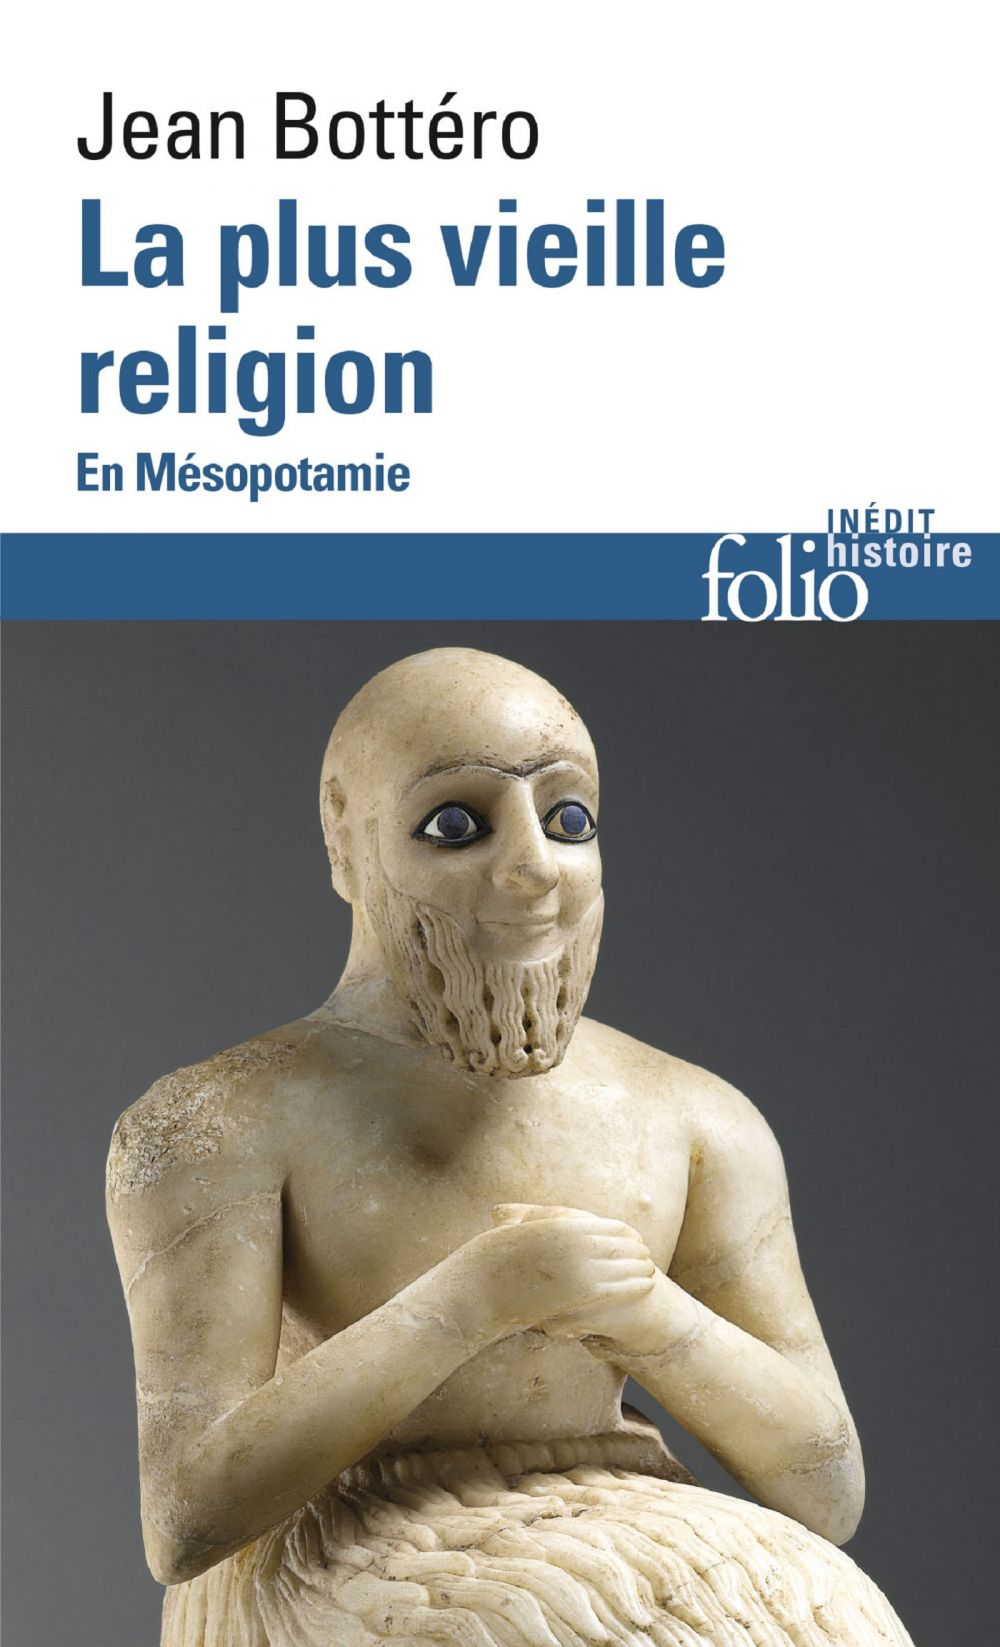 La plus vieille religion. En Mésopotamie